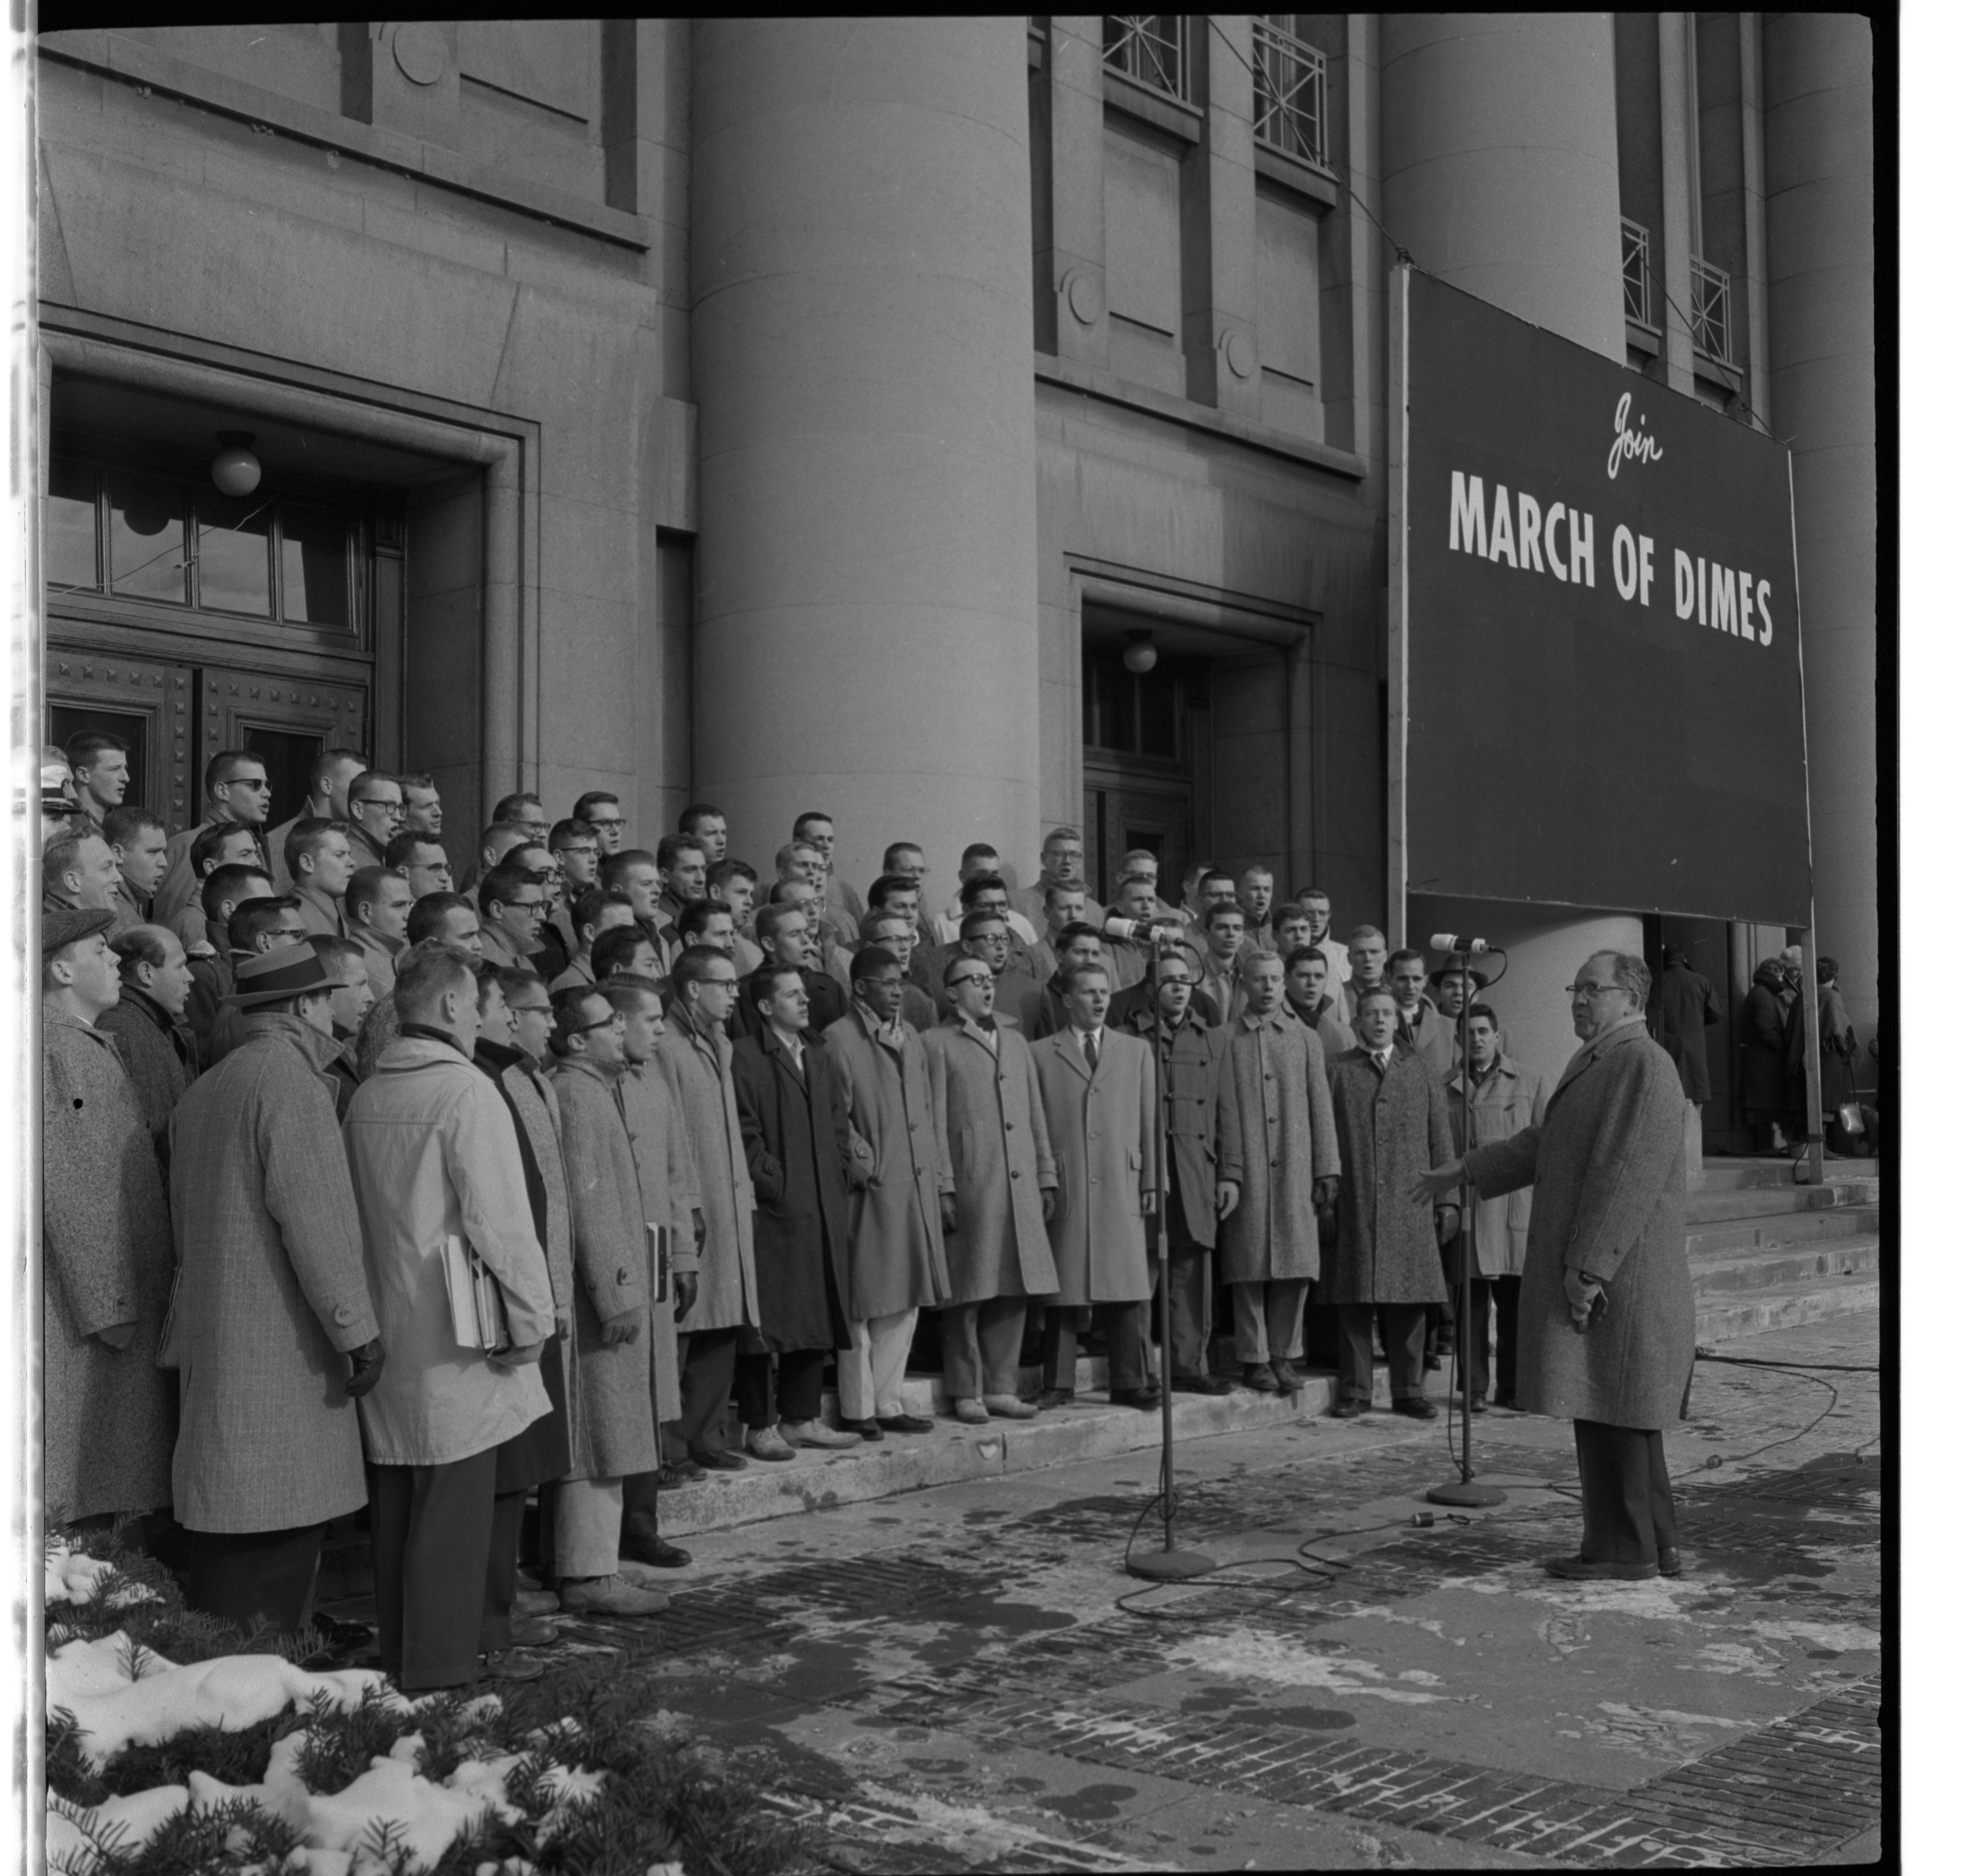 University of Michigan Men's Glee Club Entertains Crowd at March of Dimes Kickoff Variety Show at Hill Auditorium, January 1959 image